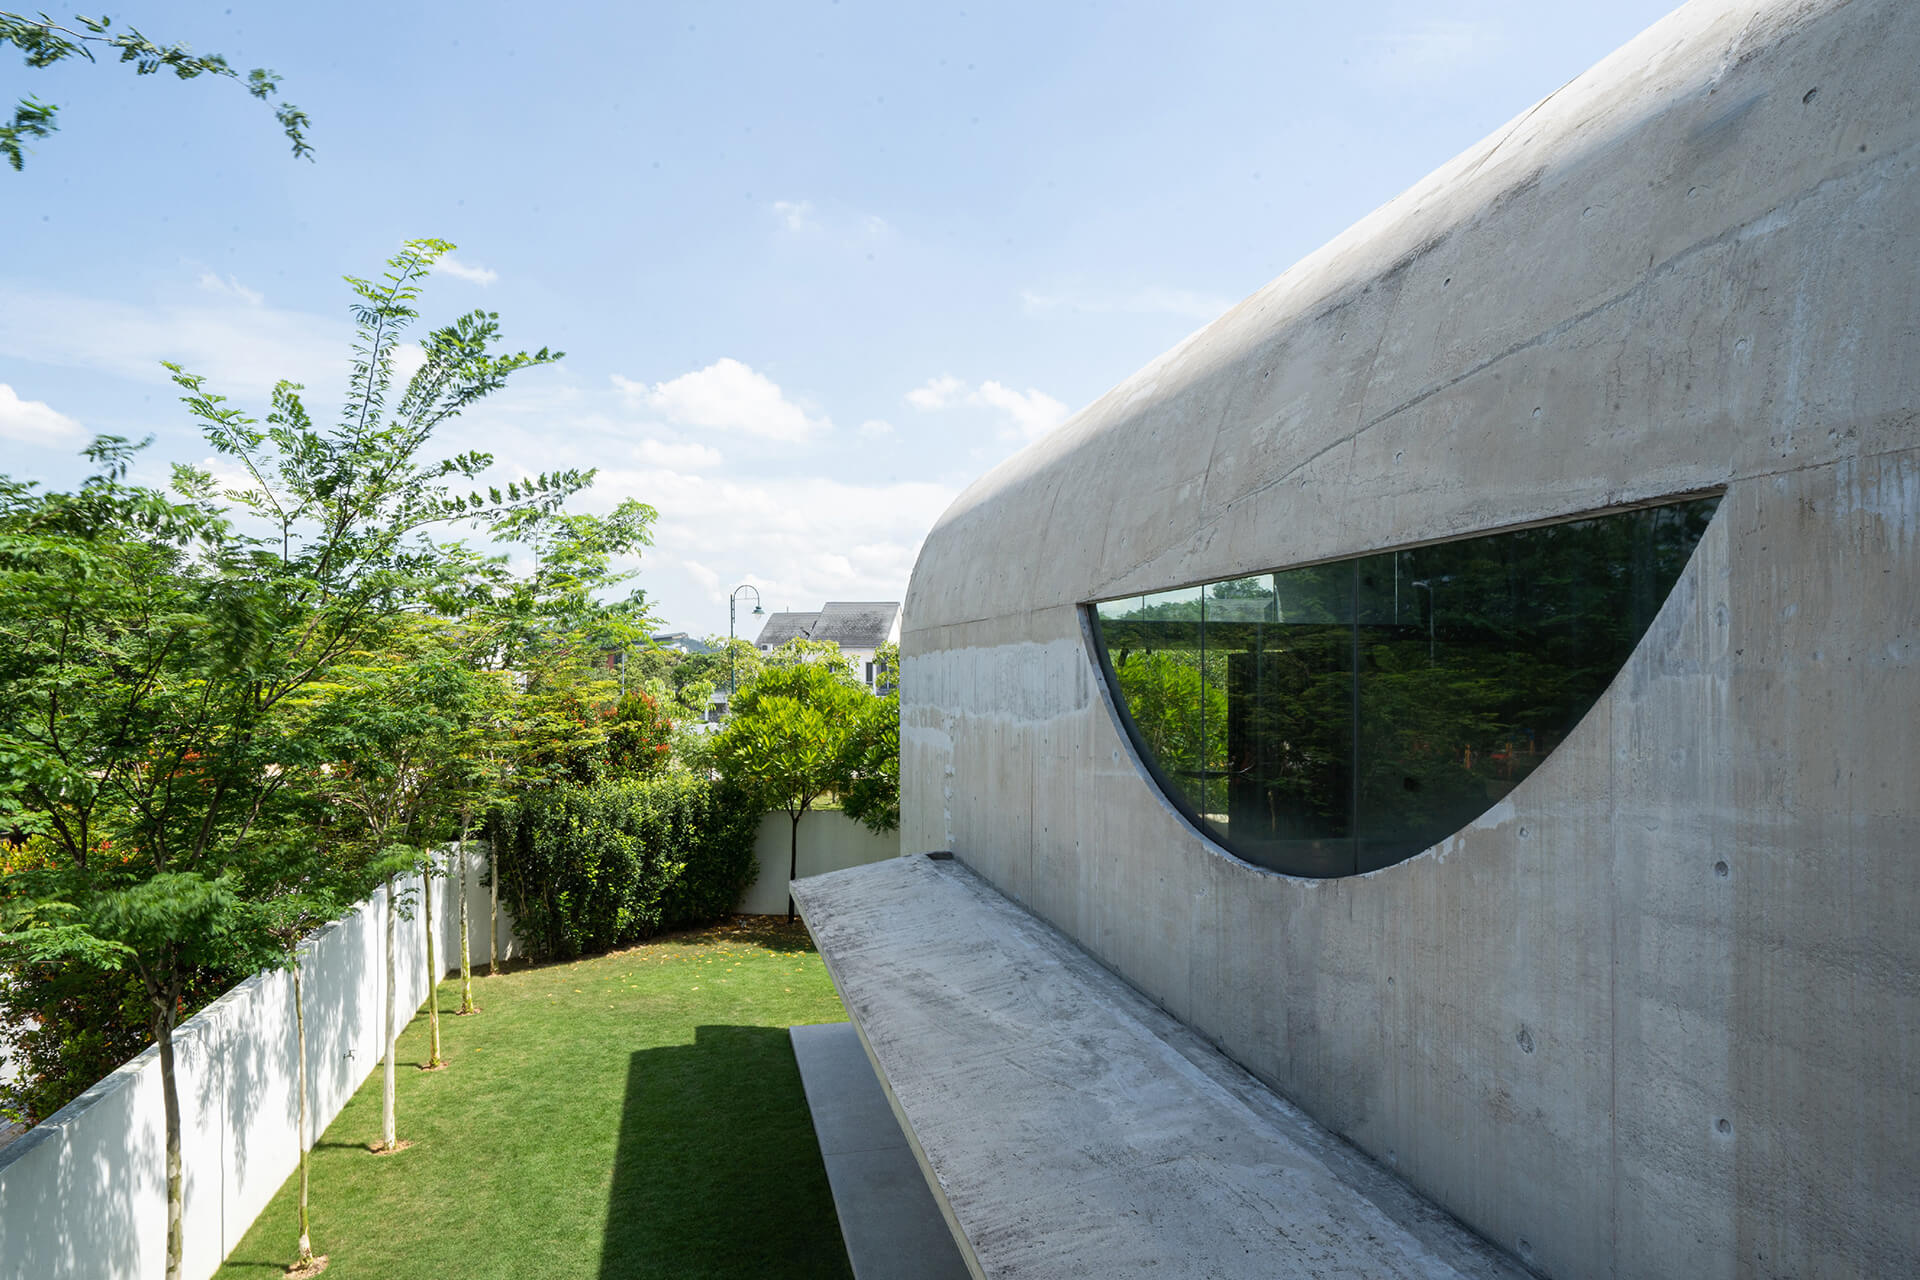 An inverted glazed arched opening gracing the side facade of the house |  Kuala Lampur, Malaysia | Fabian Tan | STIRworld